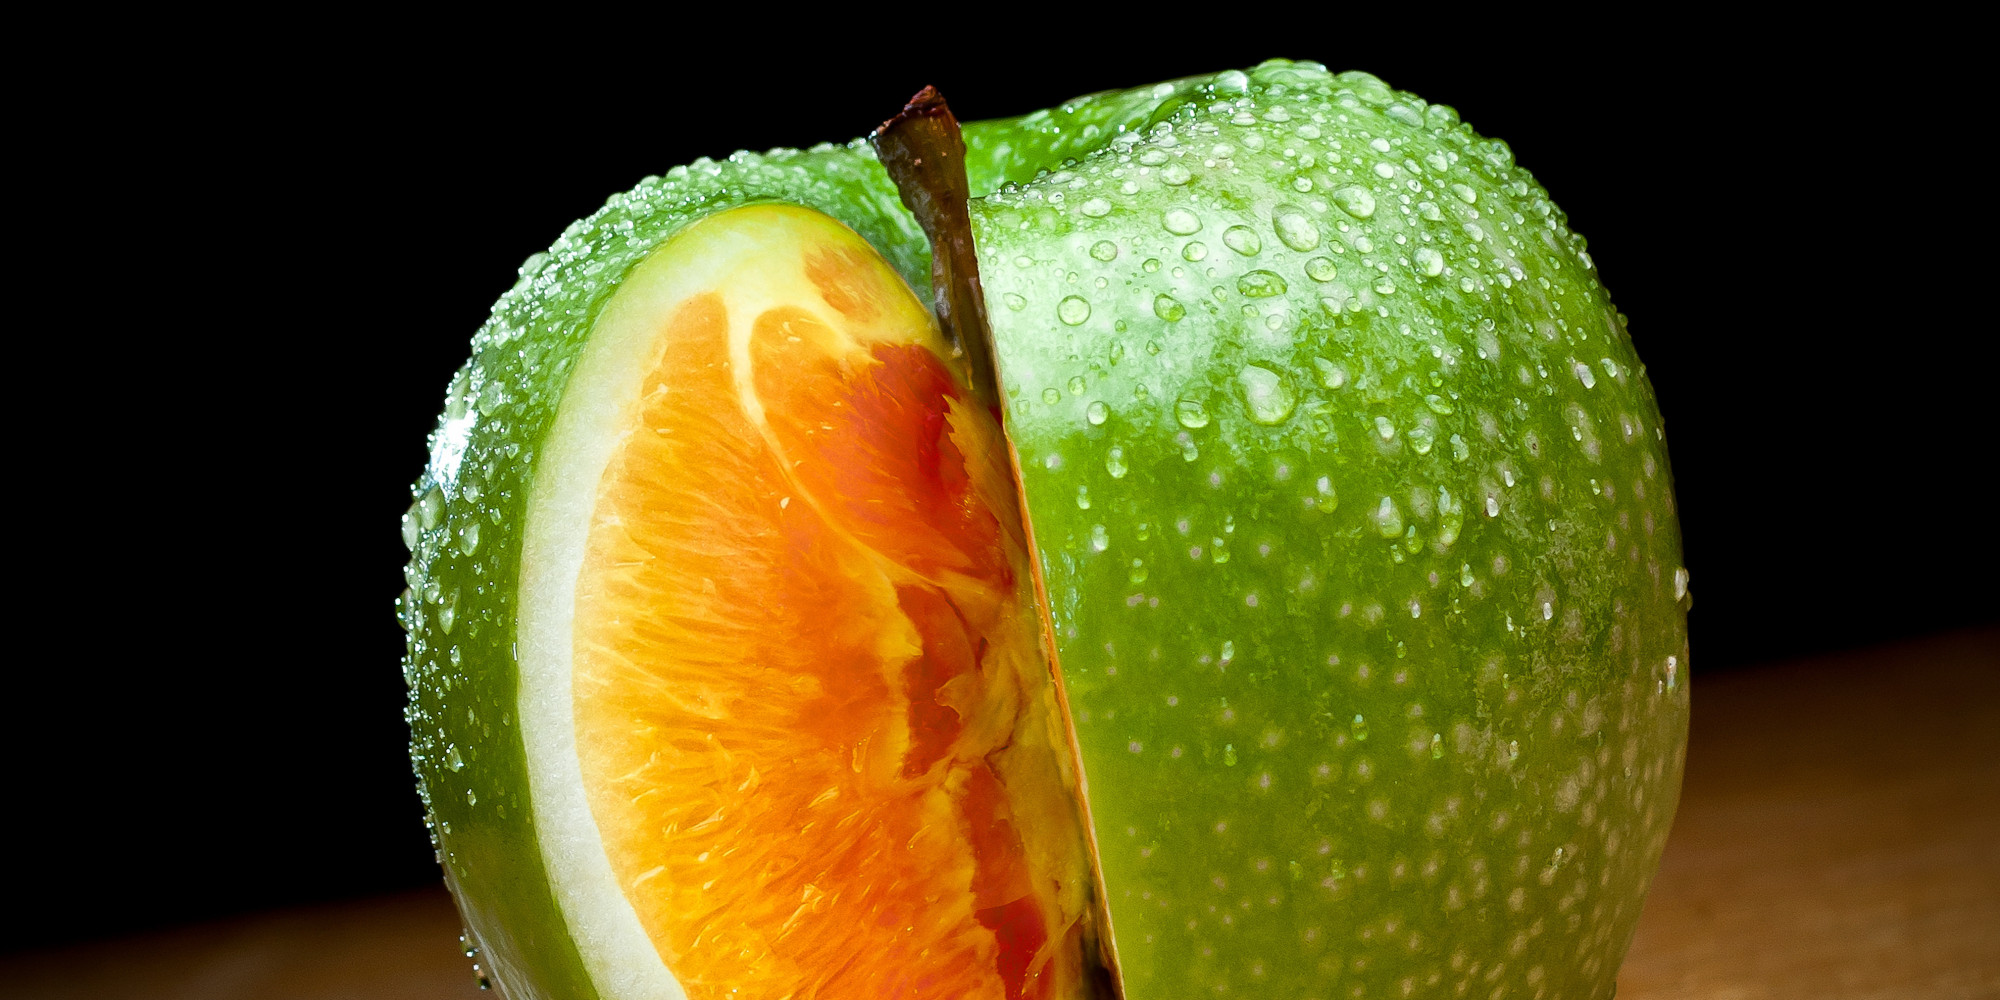 Genetically modified food should not banned